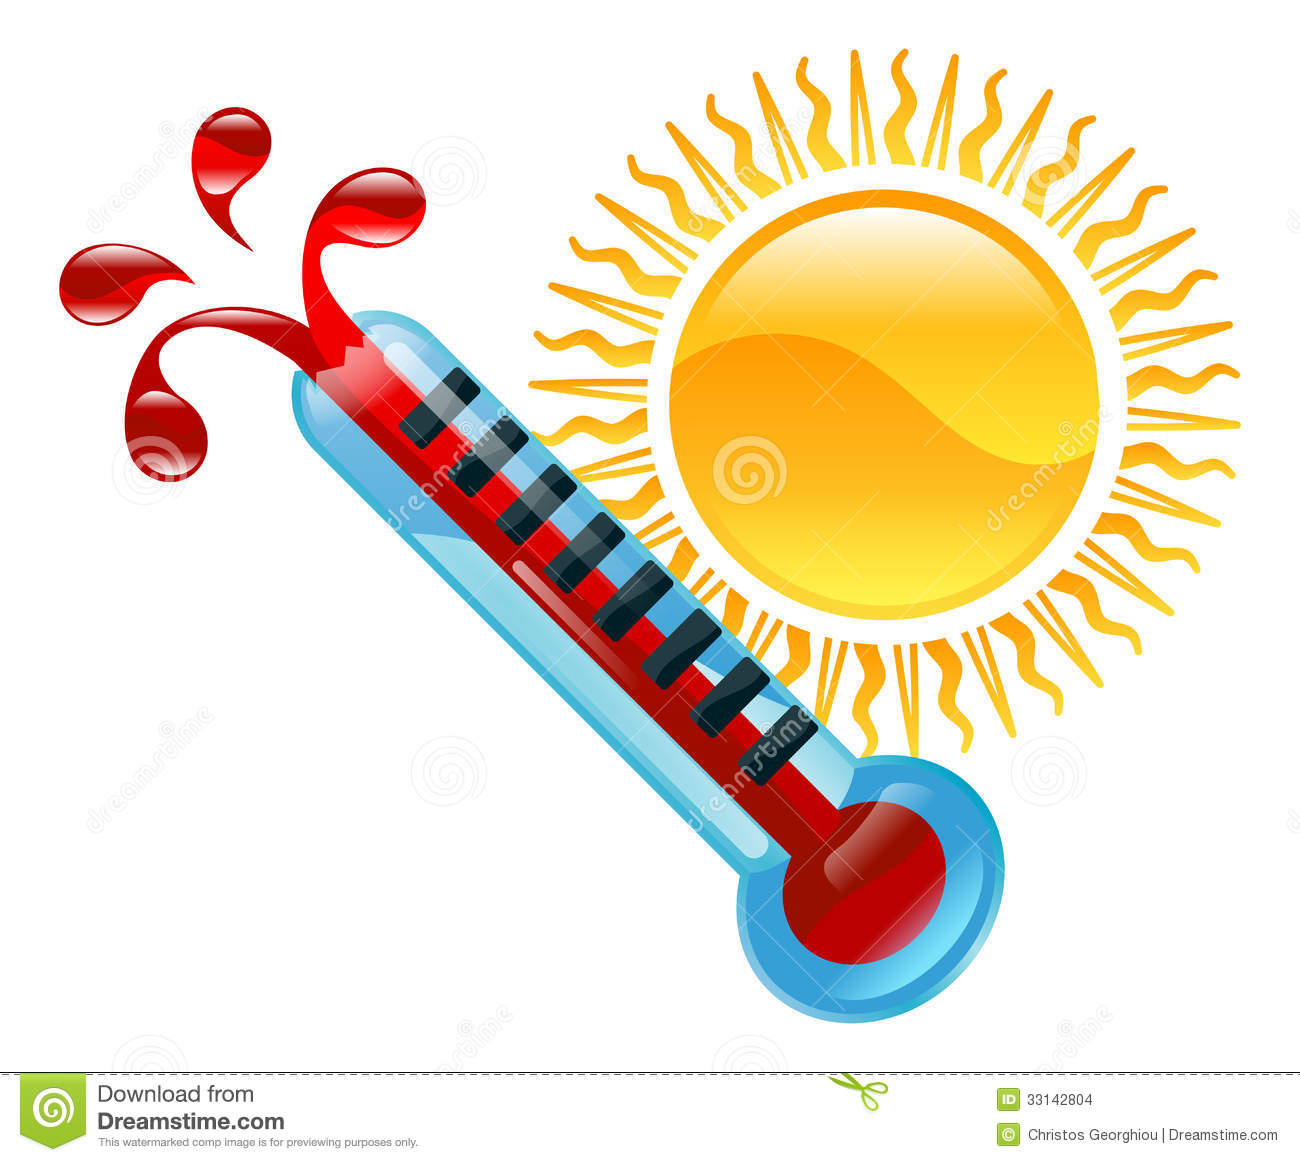 weather icon clipart boiling hot thermometer illustration.